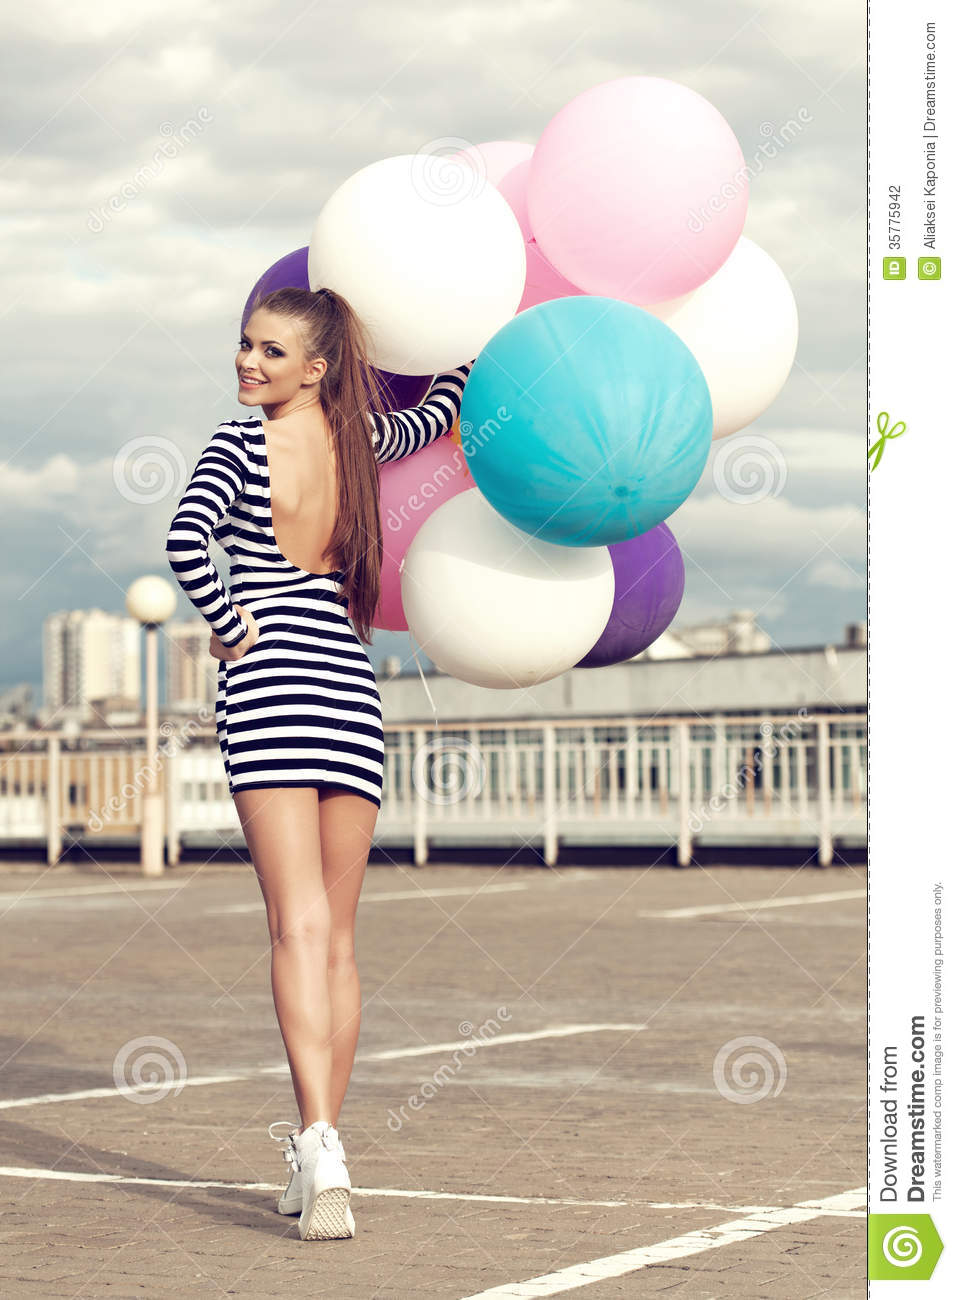 Happy young woman with big colorful latex balloons girl going back to the camera and turning outdoors lifestyle